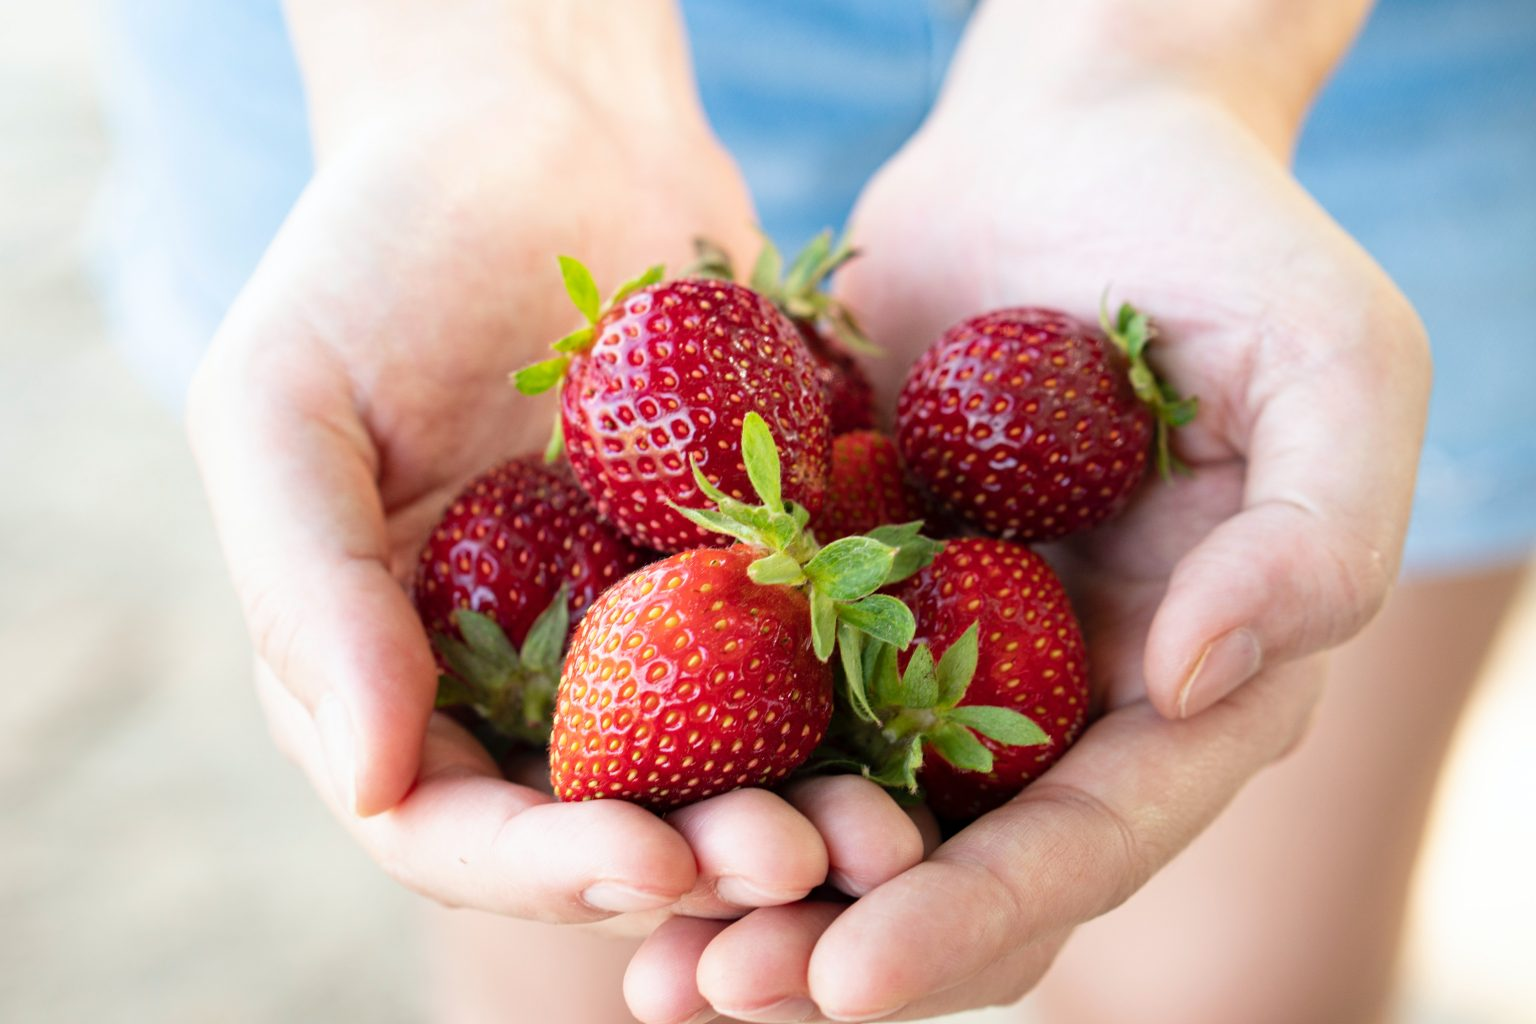 Hands with Strawberries